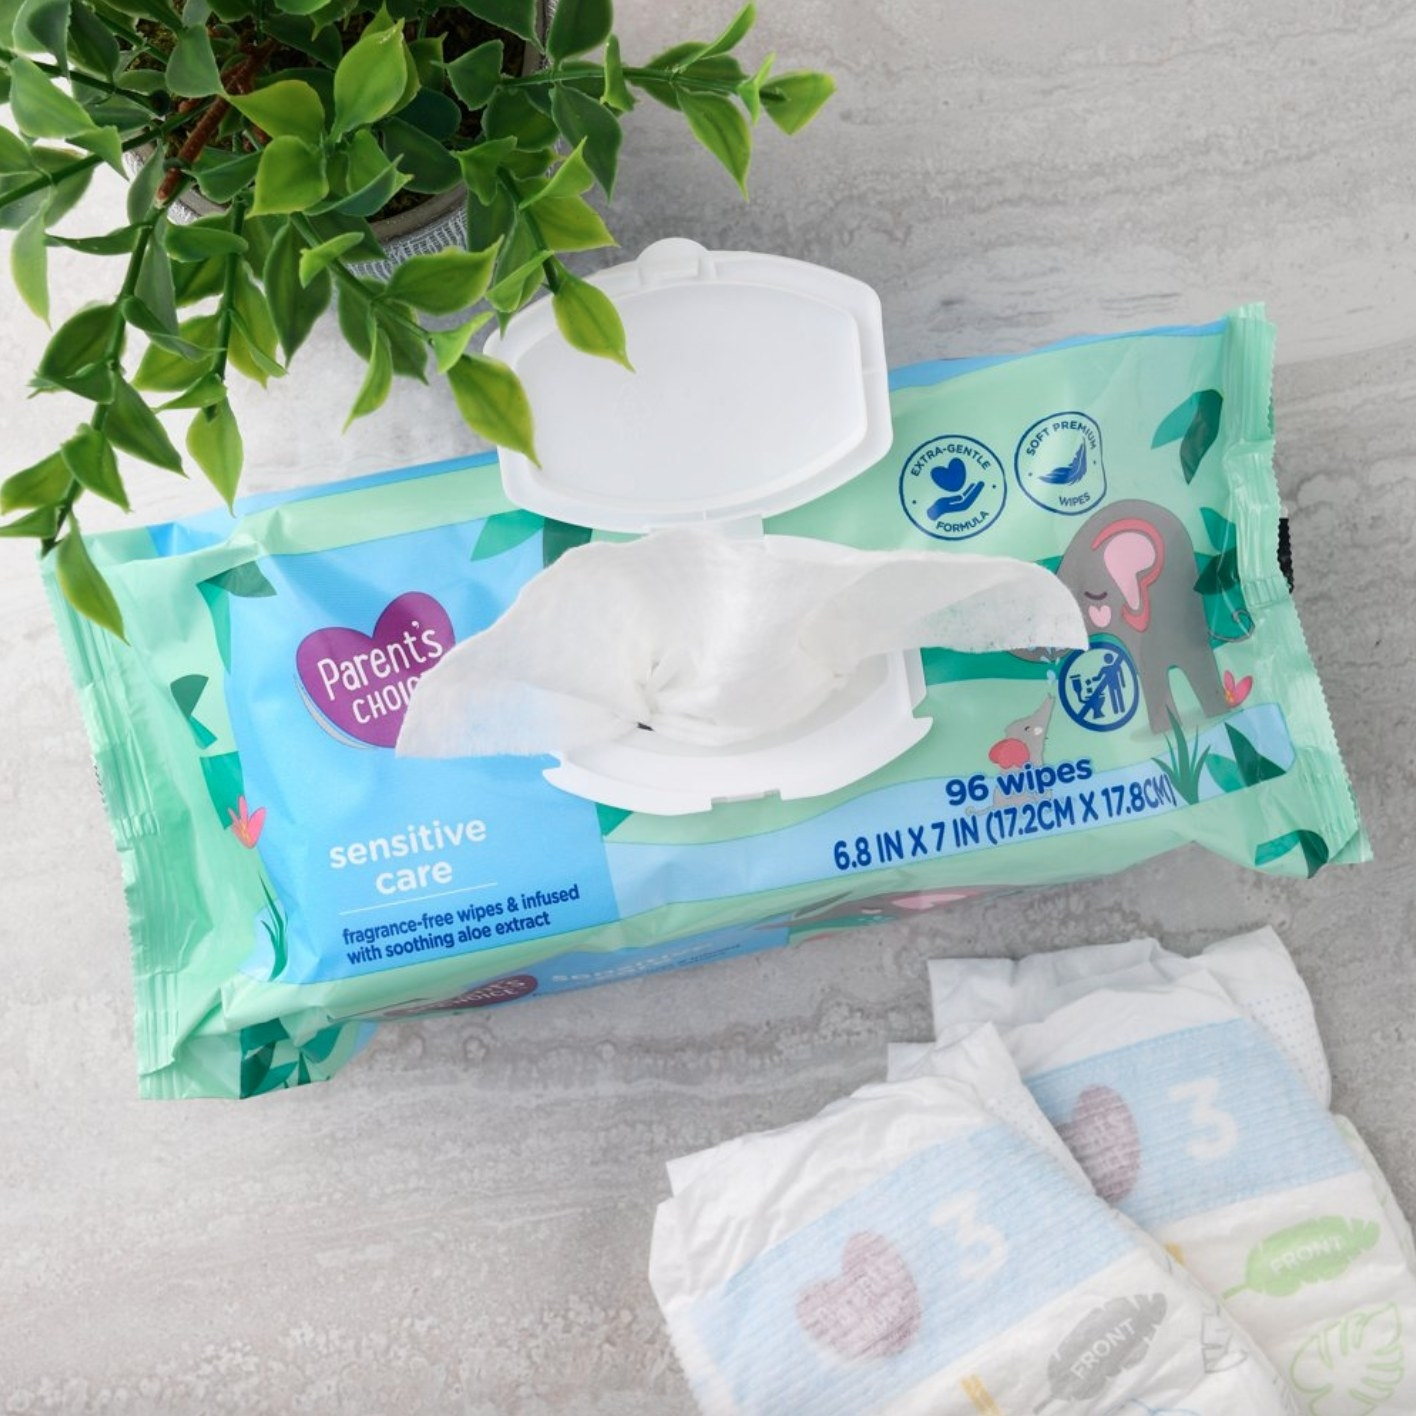 The soothing aloe baby wipes